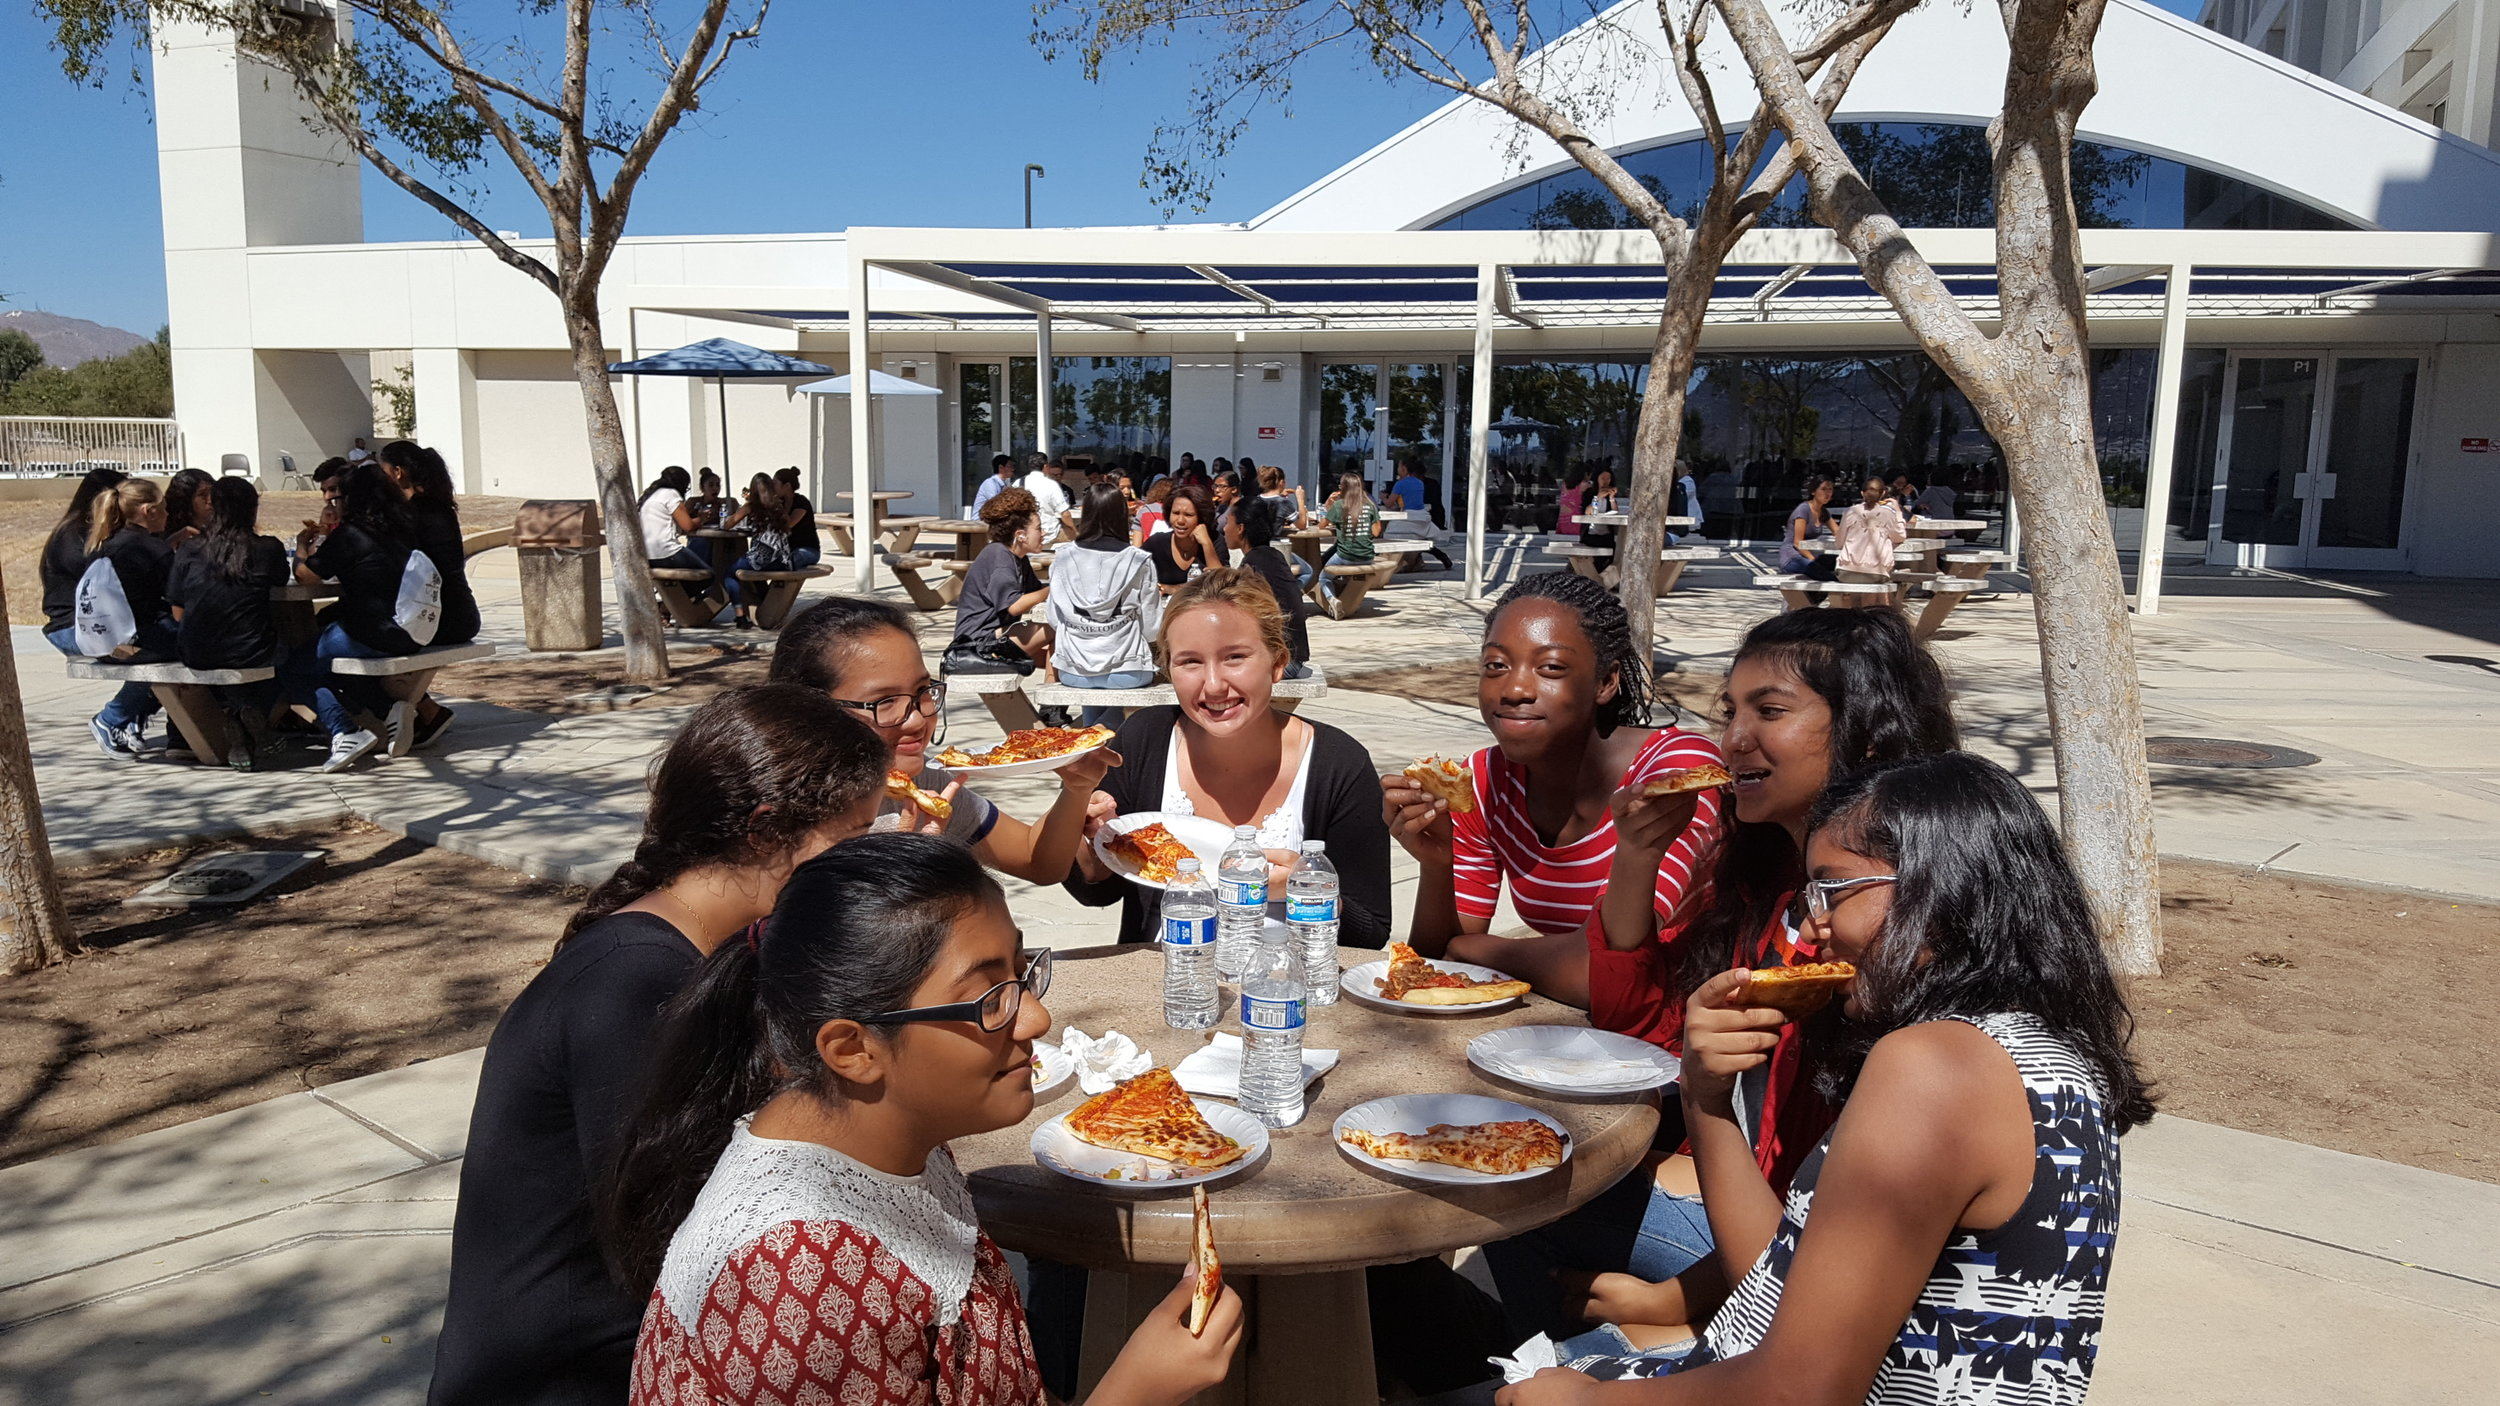 Students eating lunch.